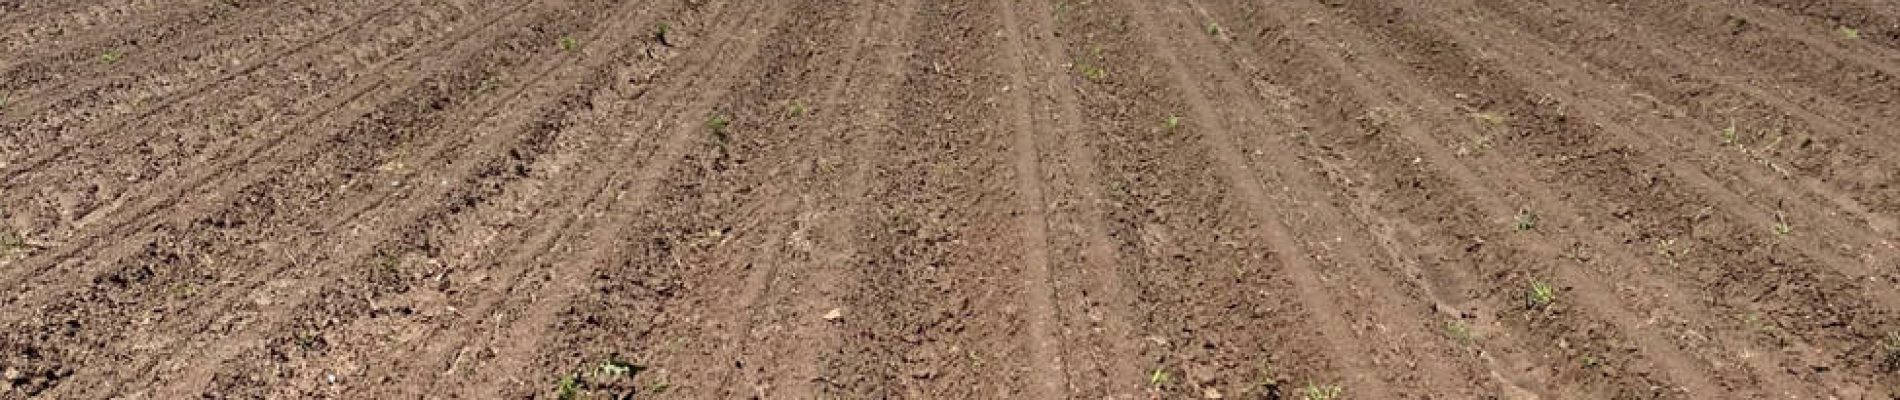 A field without crops ready for pre-emergence herbicide applications to place before crops emerge. Proper application helps provide a good competition-free environment for crops to begin their development.